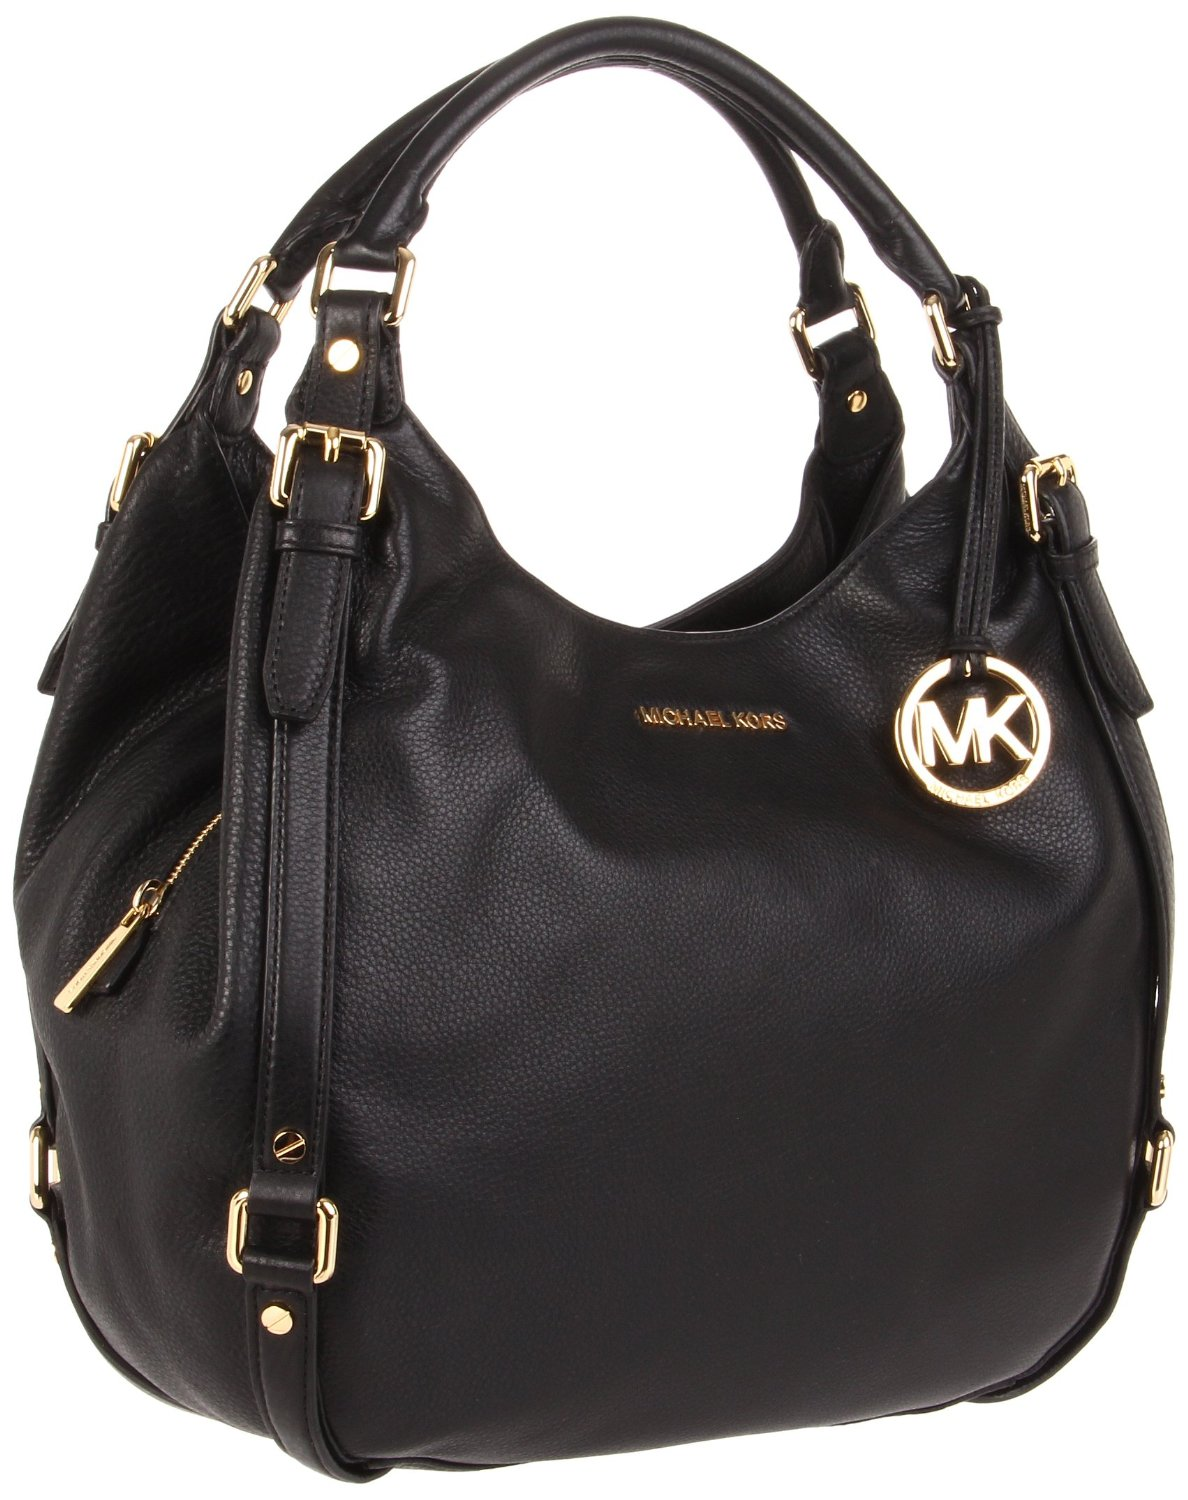 Michael Kors is the award-winning and leading American fashion designer for luxury accessories and sportswear. The company's heritage is rooted in producing polished, sleek, sophisticated American sportswear with a jet-set attitude.